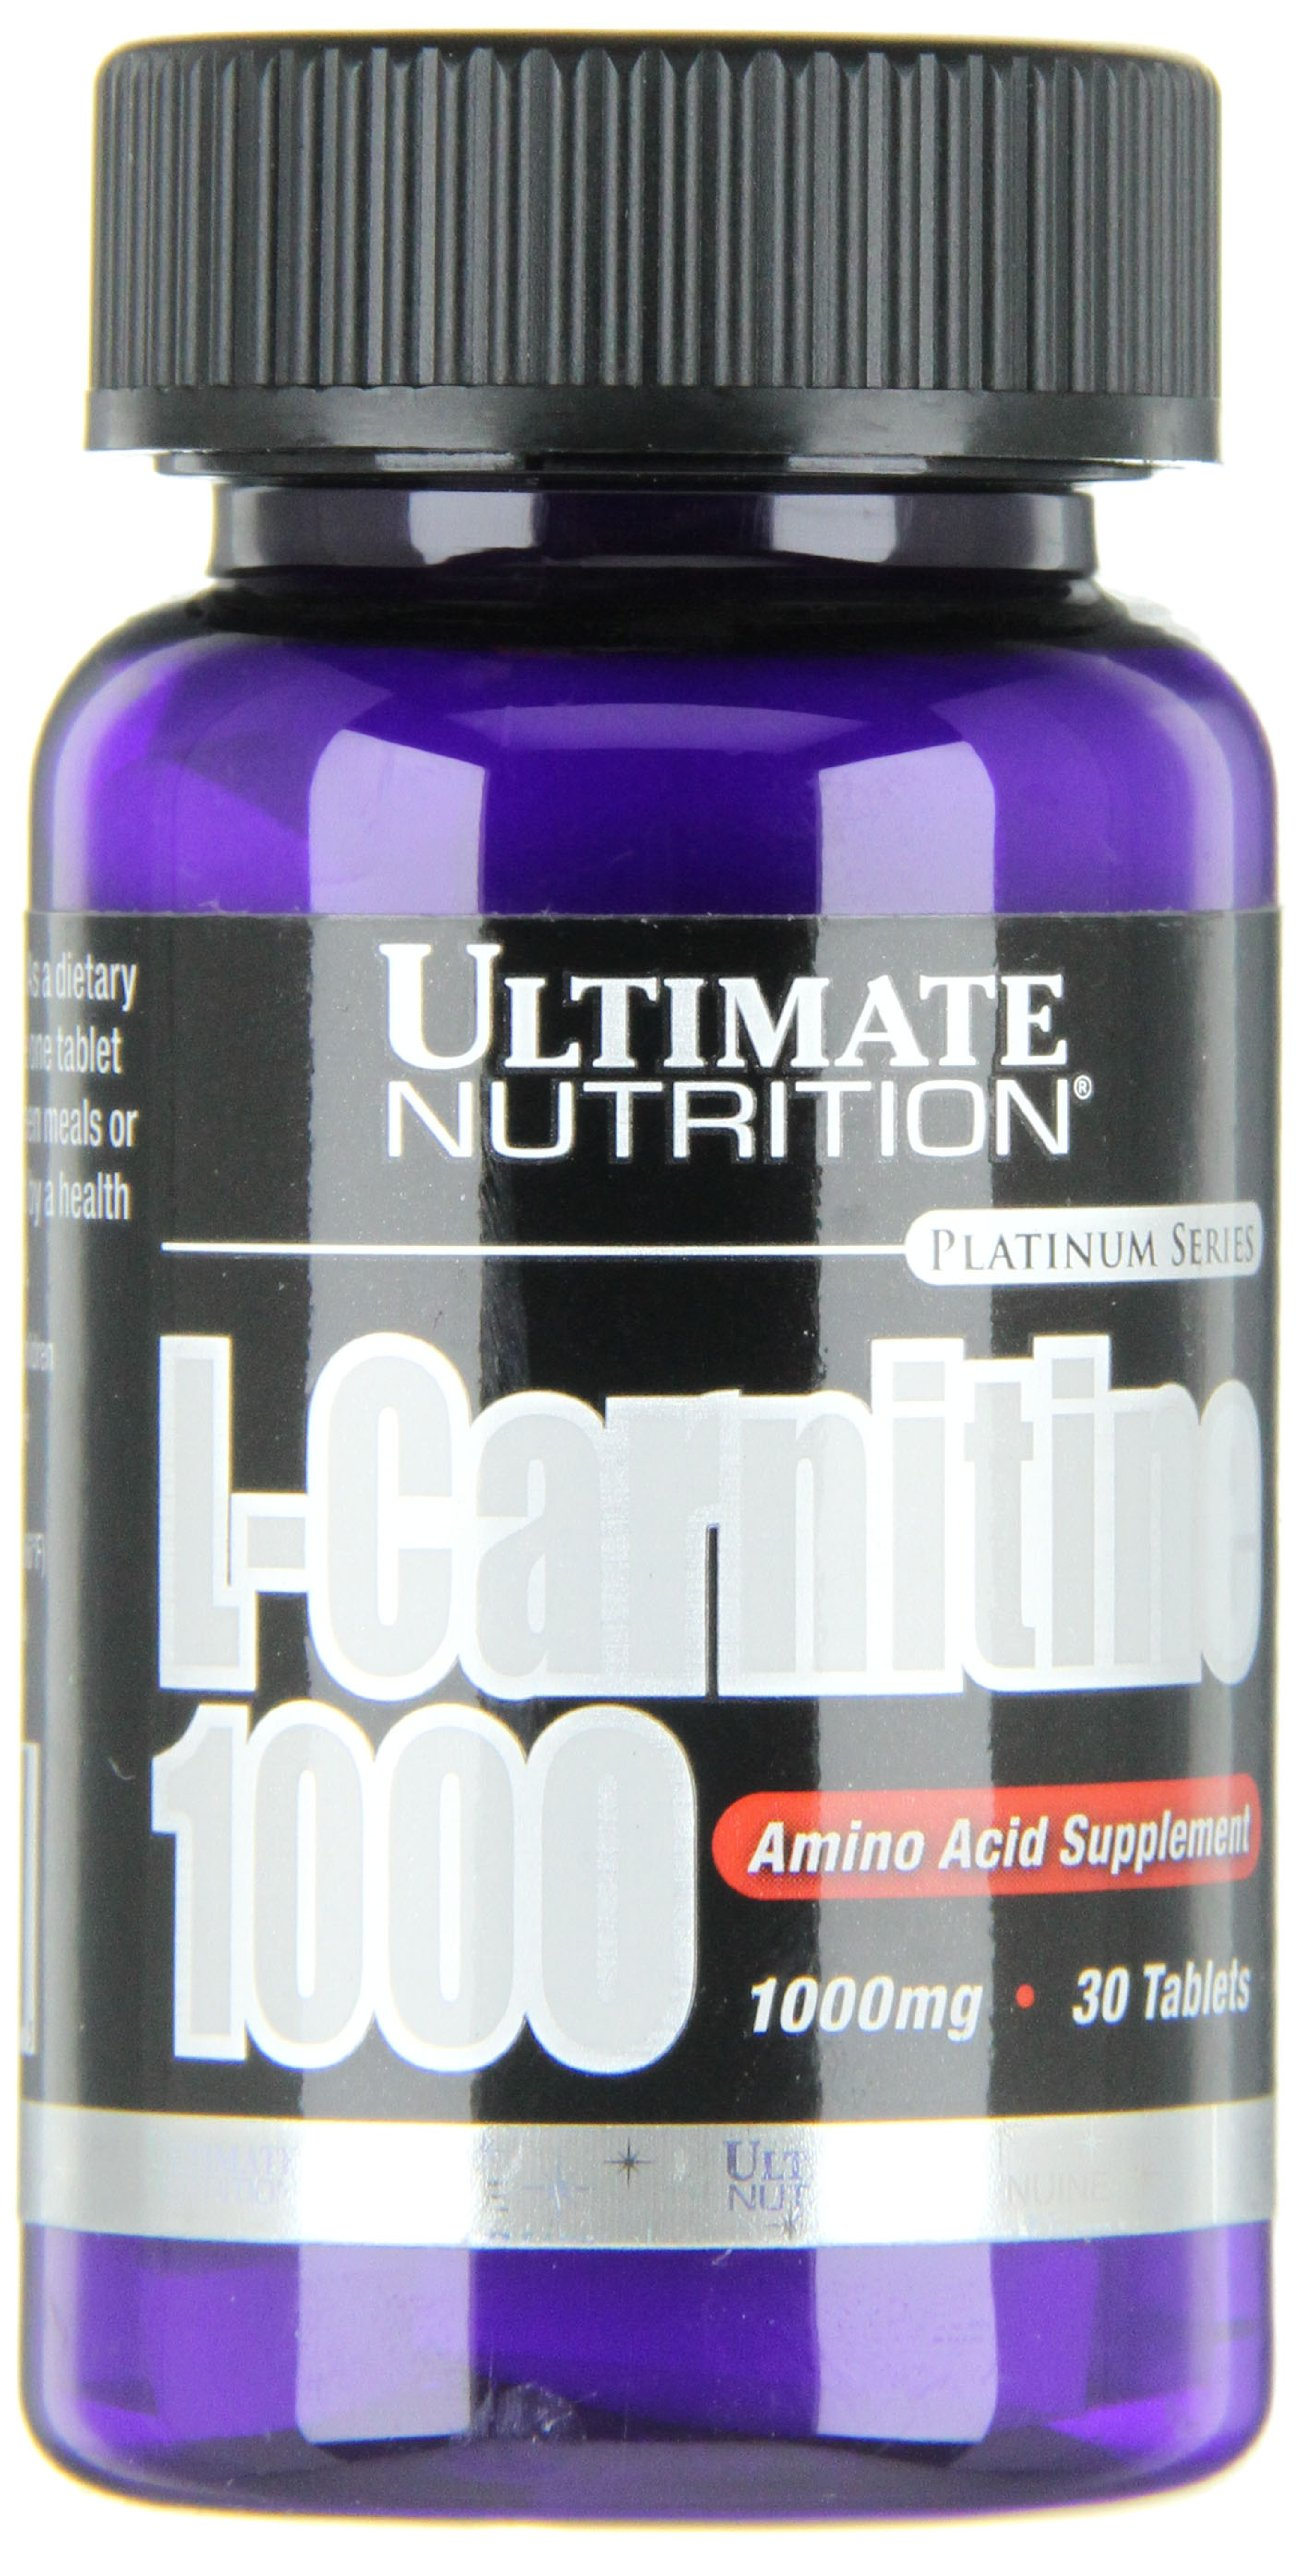 Ultimate Nutrition Weight Loss Ultra Ripped Faf 90 Caps Capsul